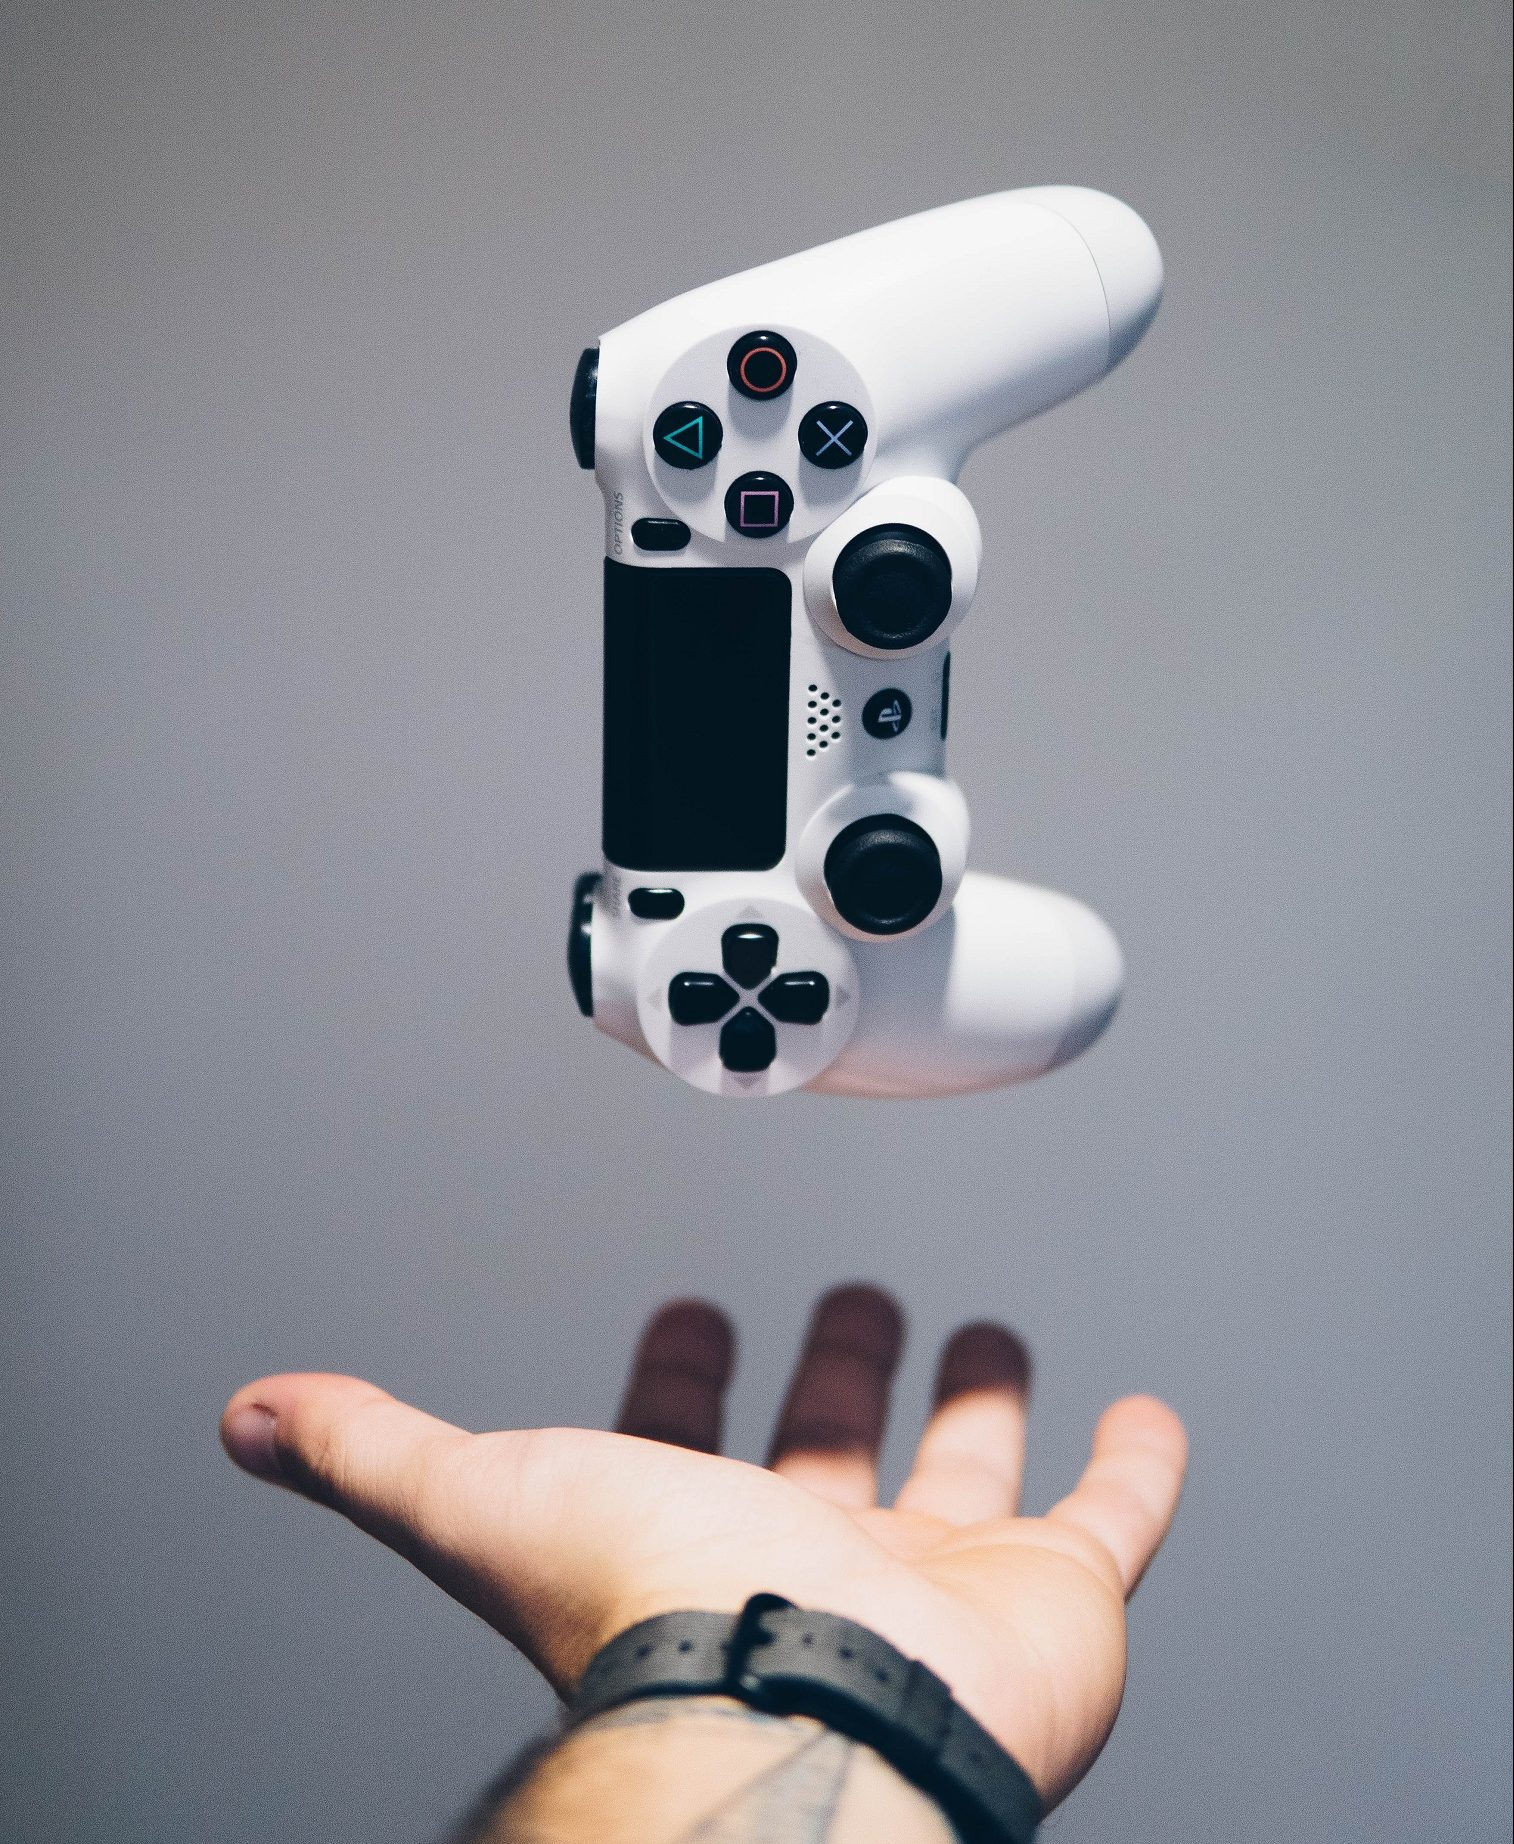 Video game controller being dropped into the palm of a hand